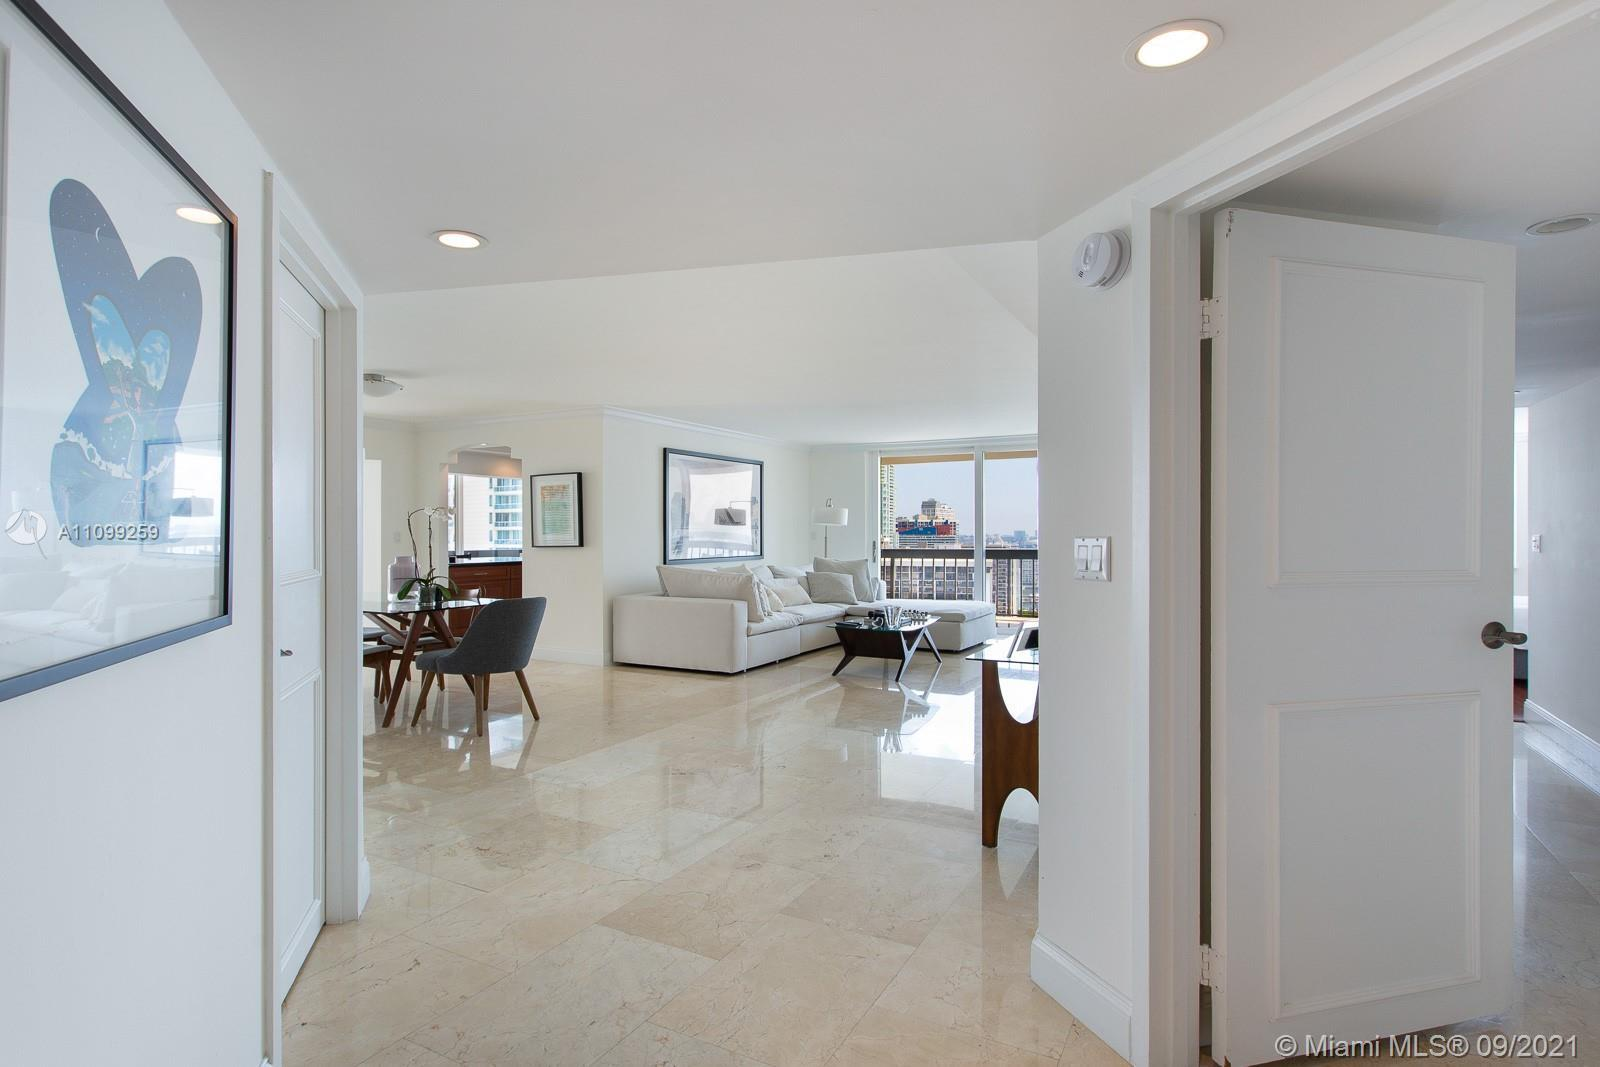 Beautifully updated corner unit in Brickell Bay Club, 2 bedrooms, 2 full bathrooms with lots of clos